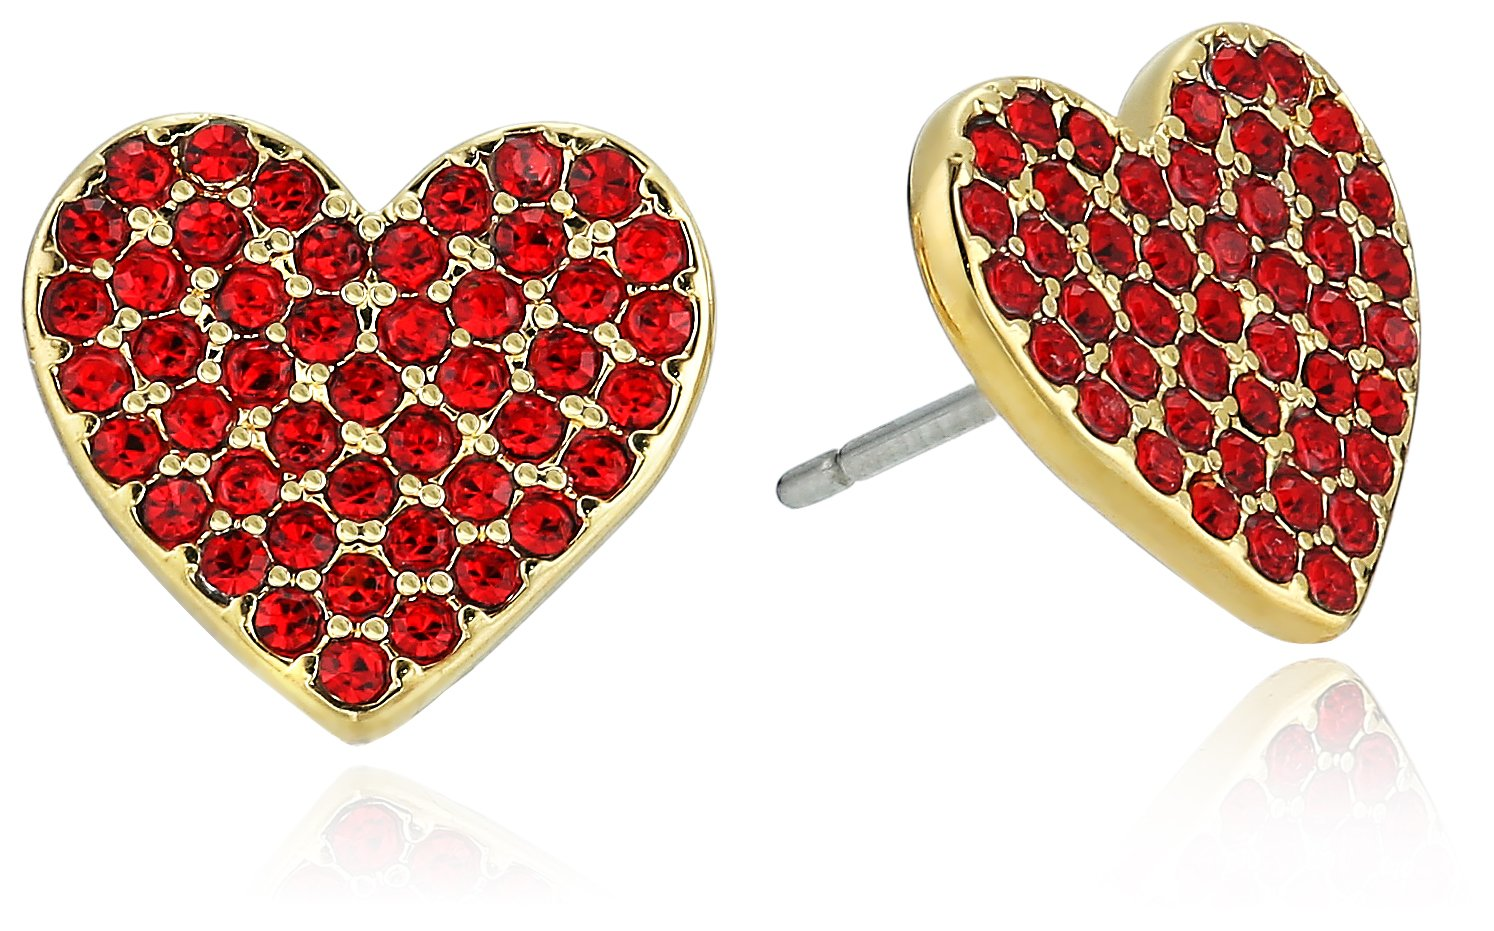 kate spade new york Pave Heart Red Stud Earrings